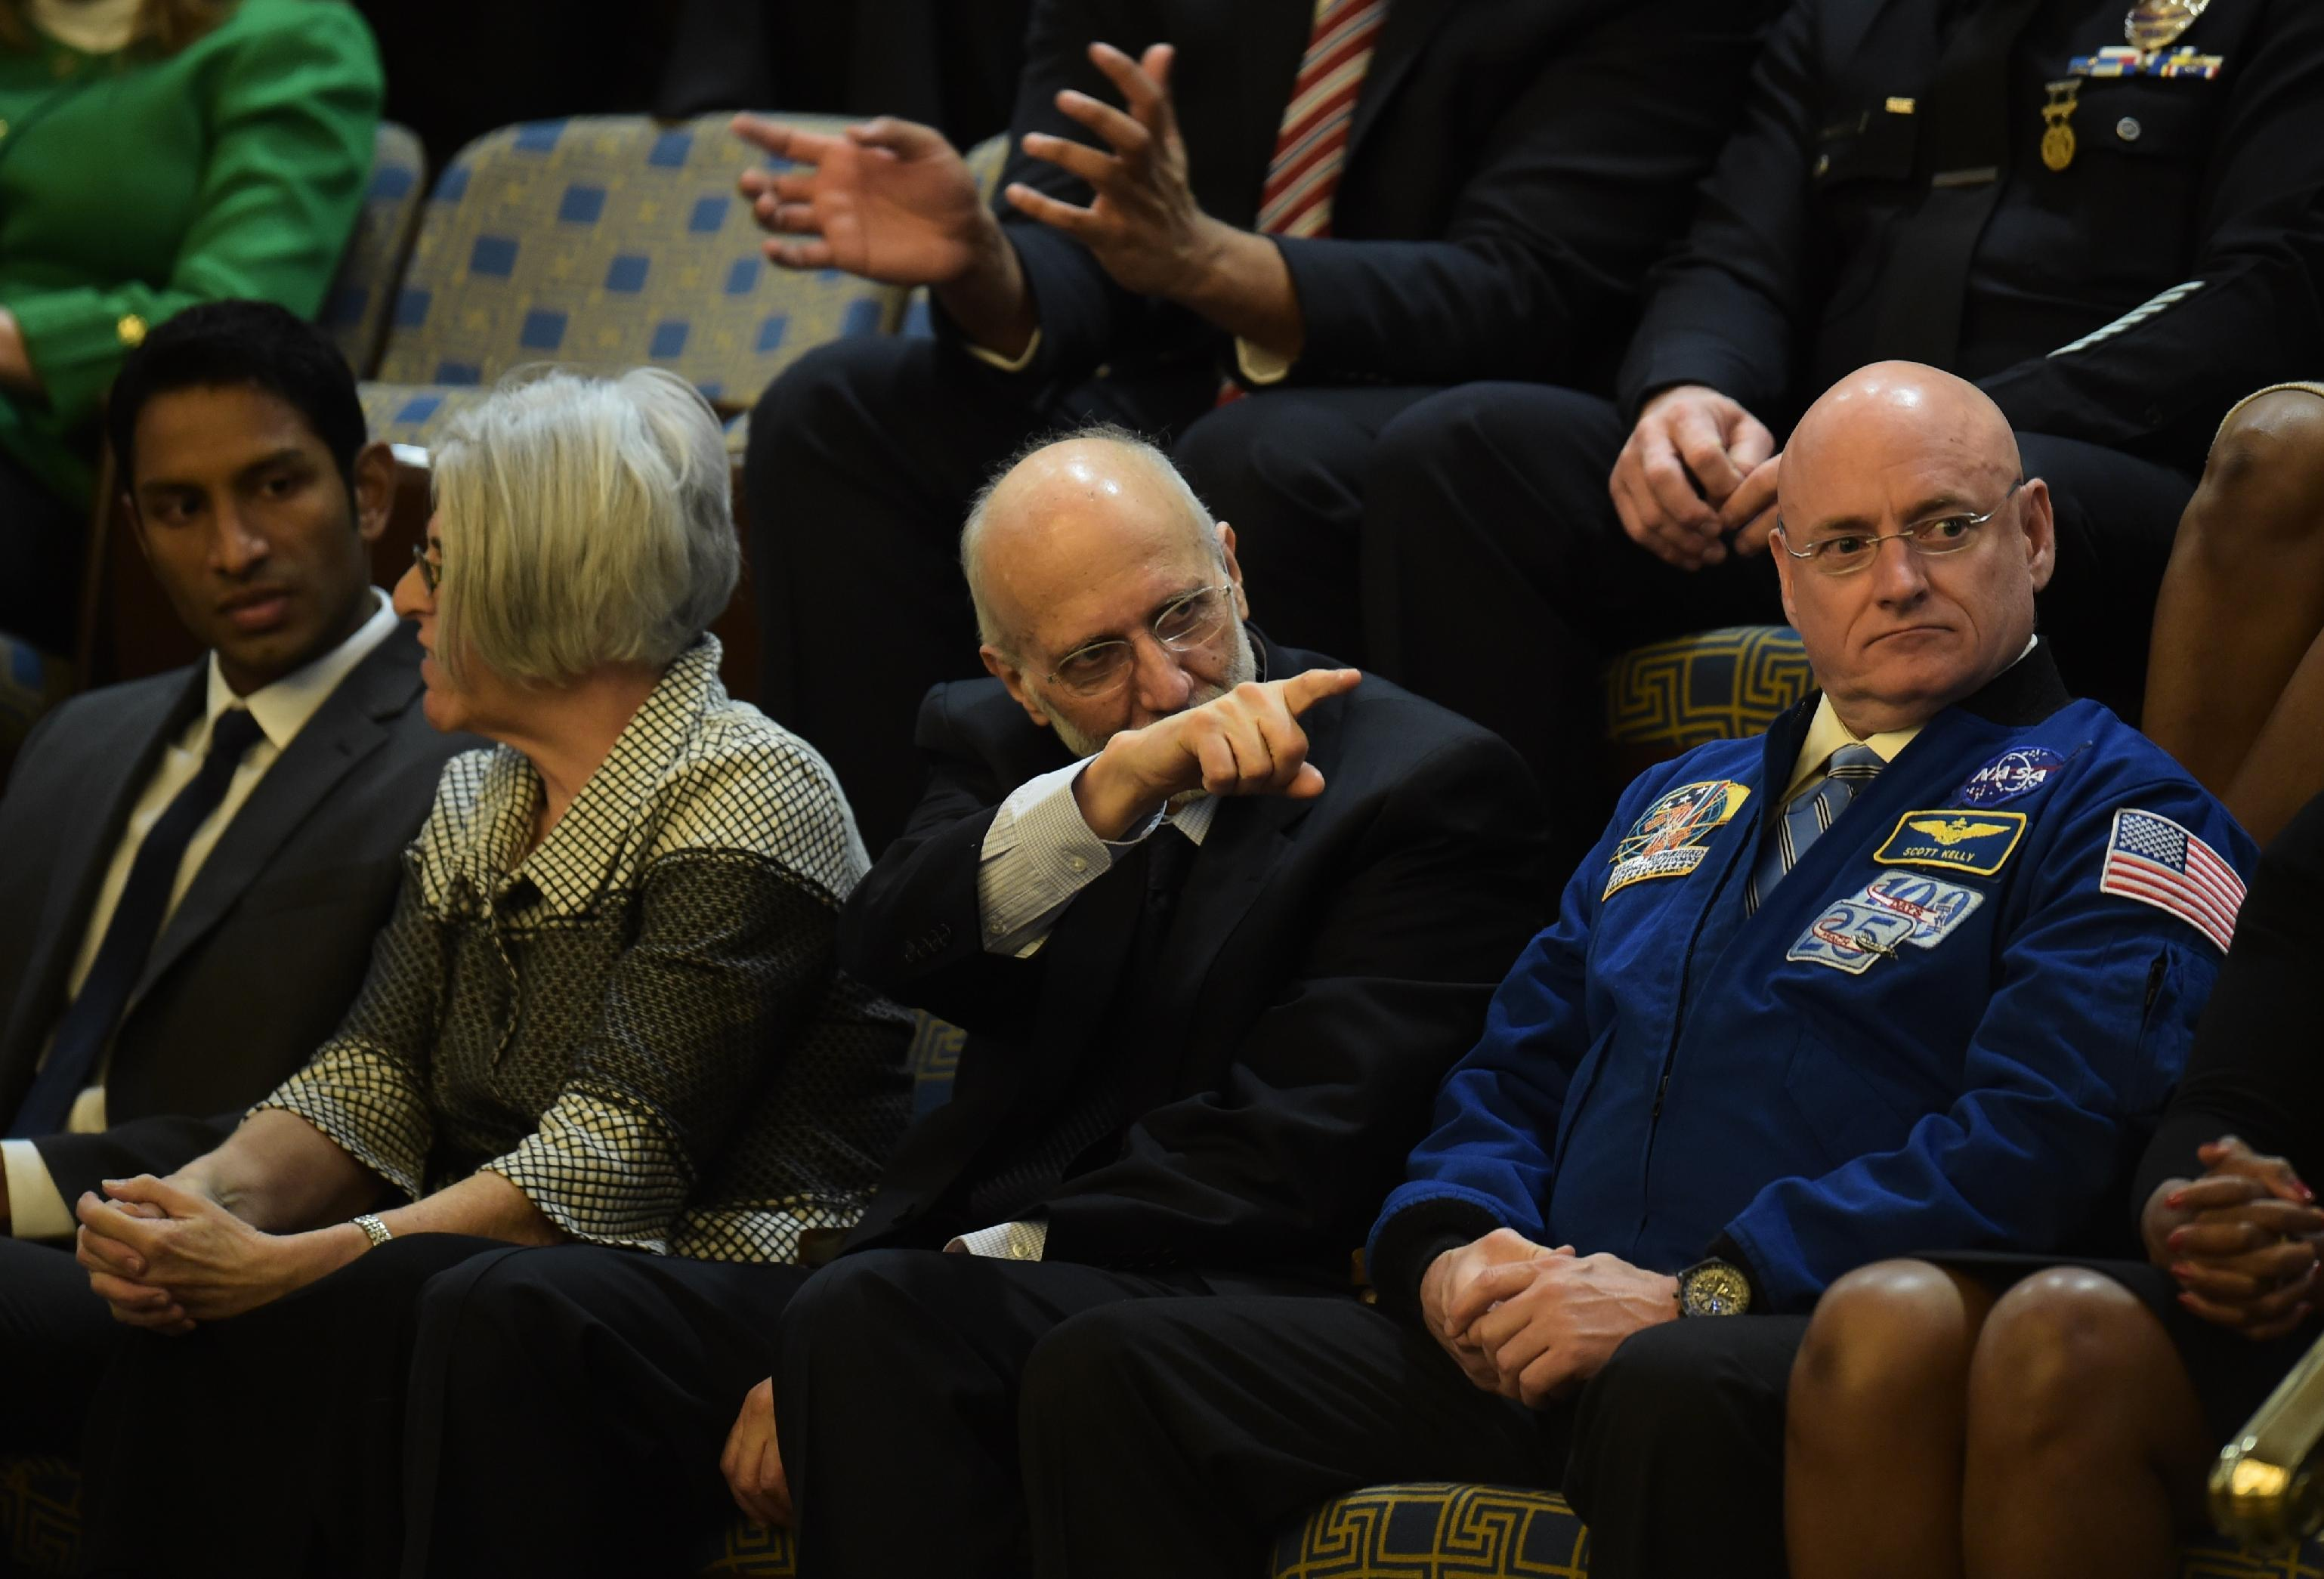 Alan Gross (C), the US contractor released from prison in Cuba last month, awaits US President Barack Obama's State of the Union address in Washington, DC on January 20, 2015 (AFP Photo/Jim Watson)